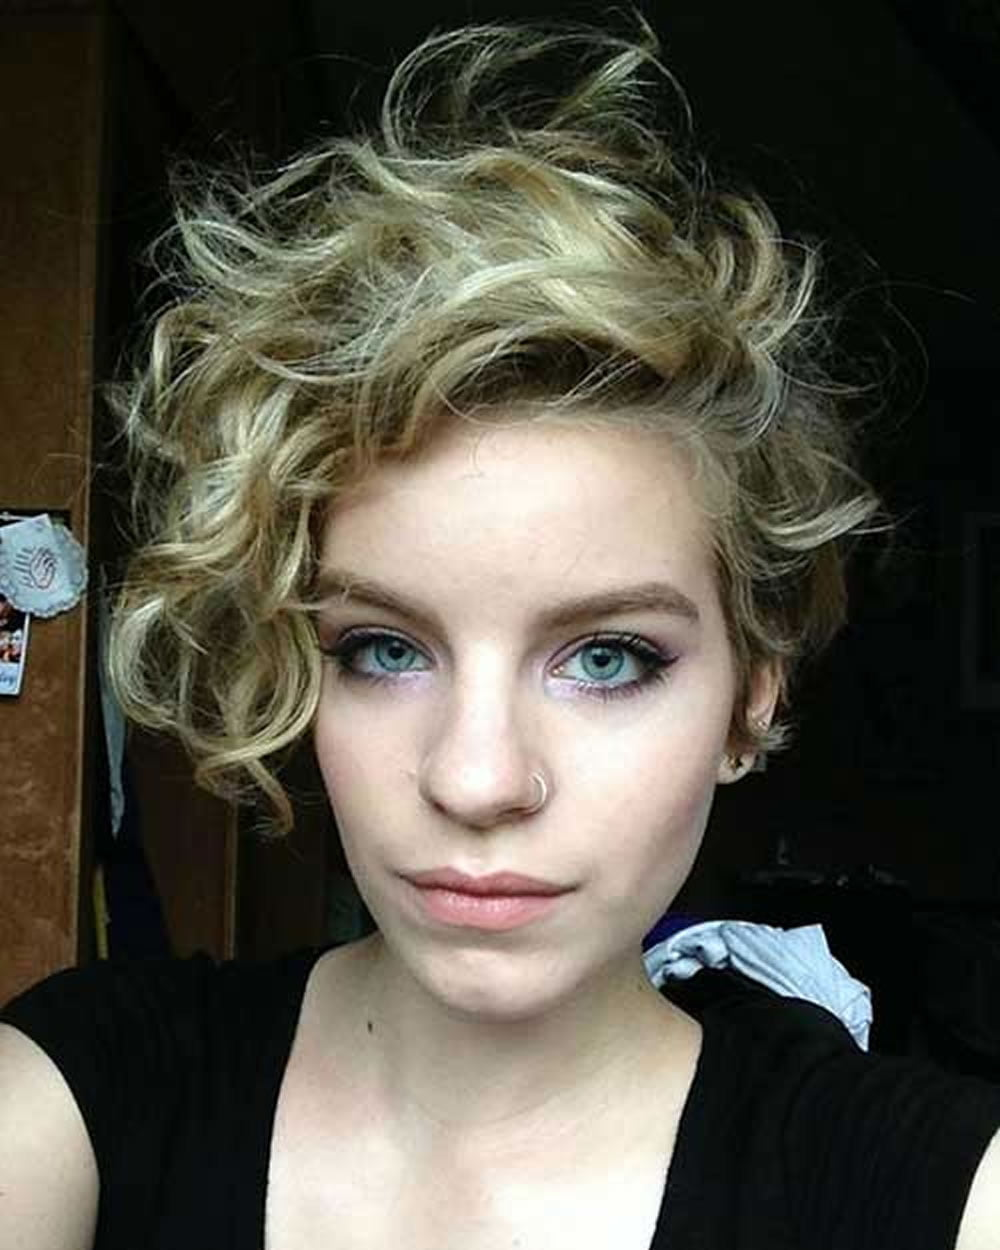 Curly Pixie Haircuts for 2018 u0026 Pixie Short Hairstyle Ideas u2013 Page 5 u2013 HAIRSTYLES